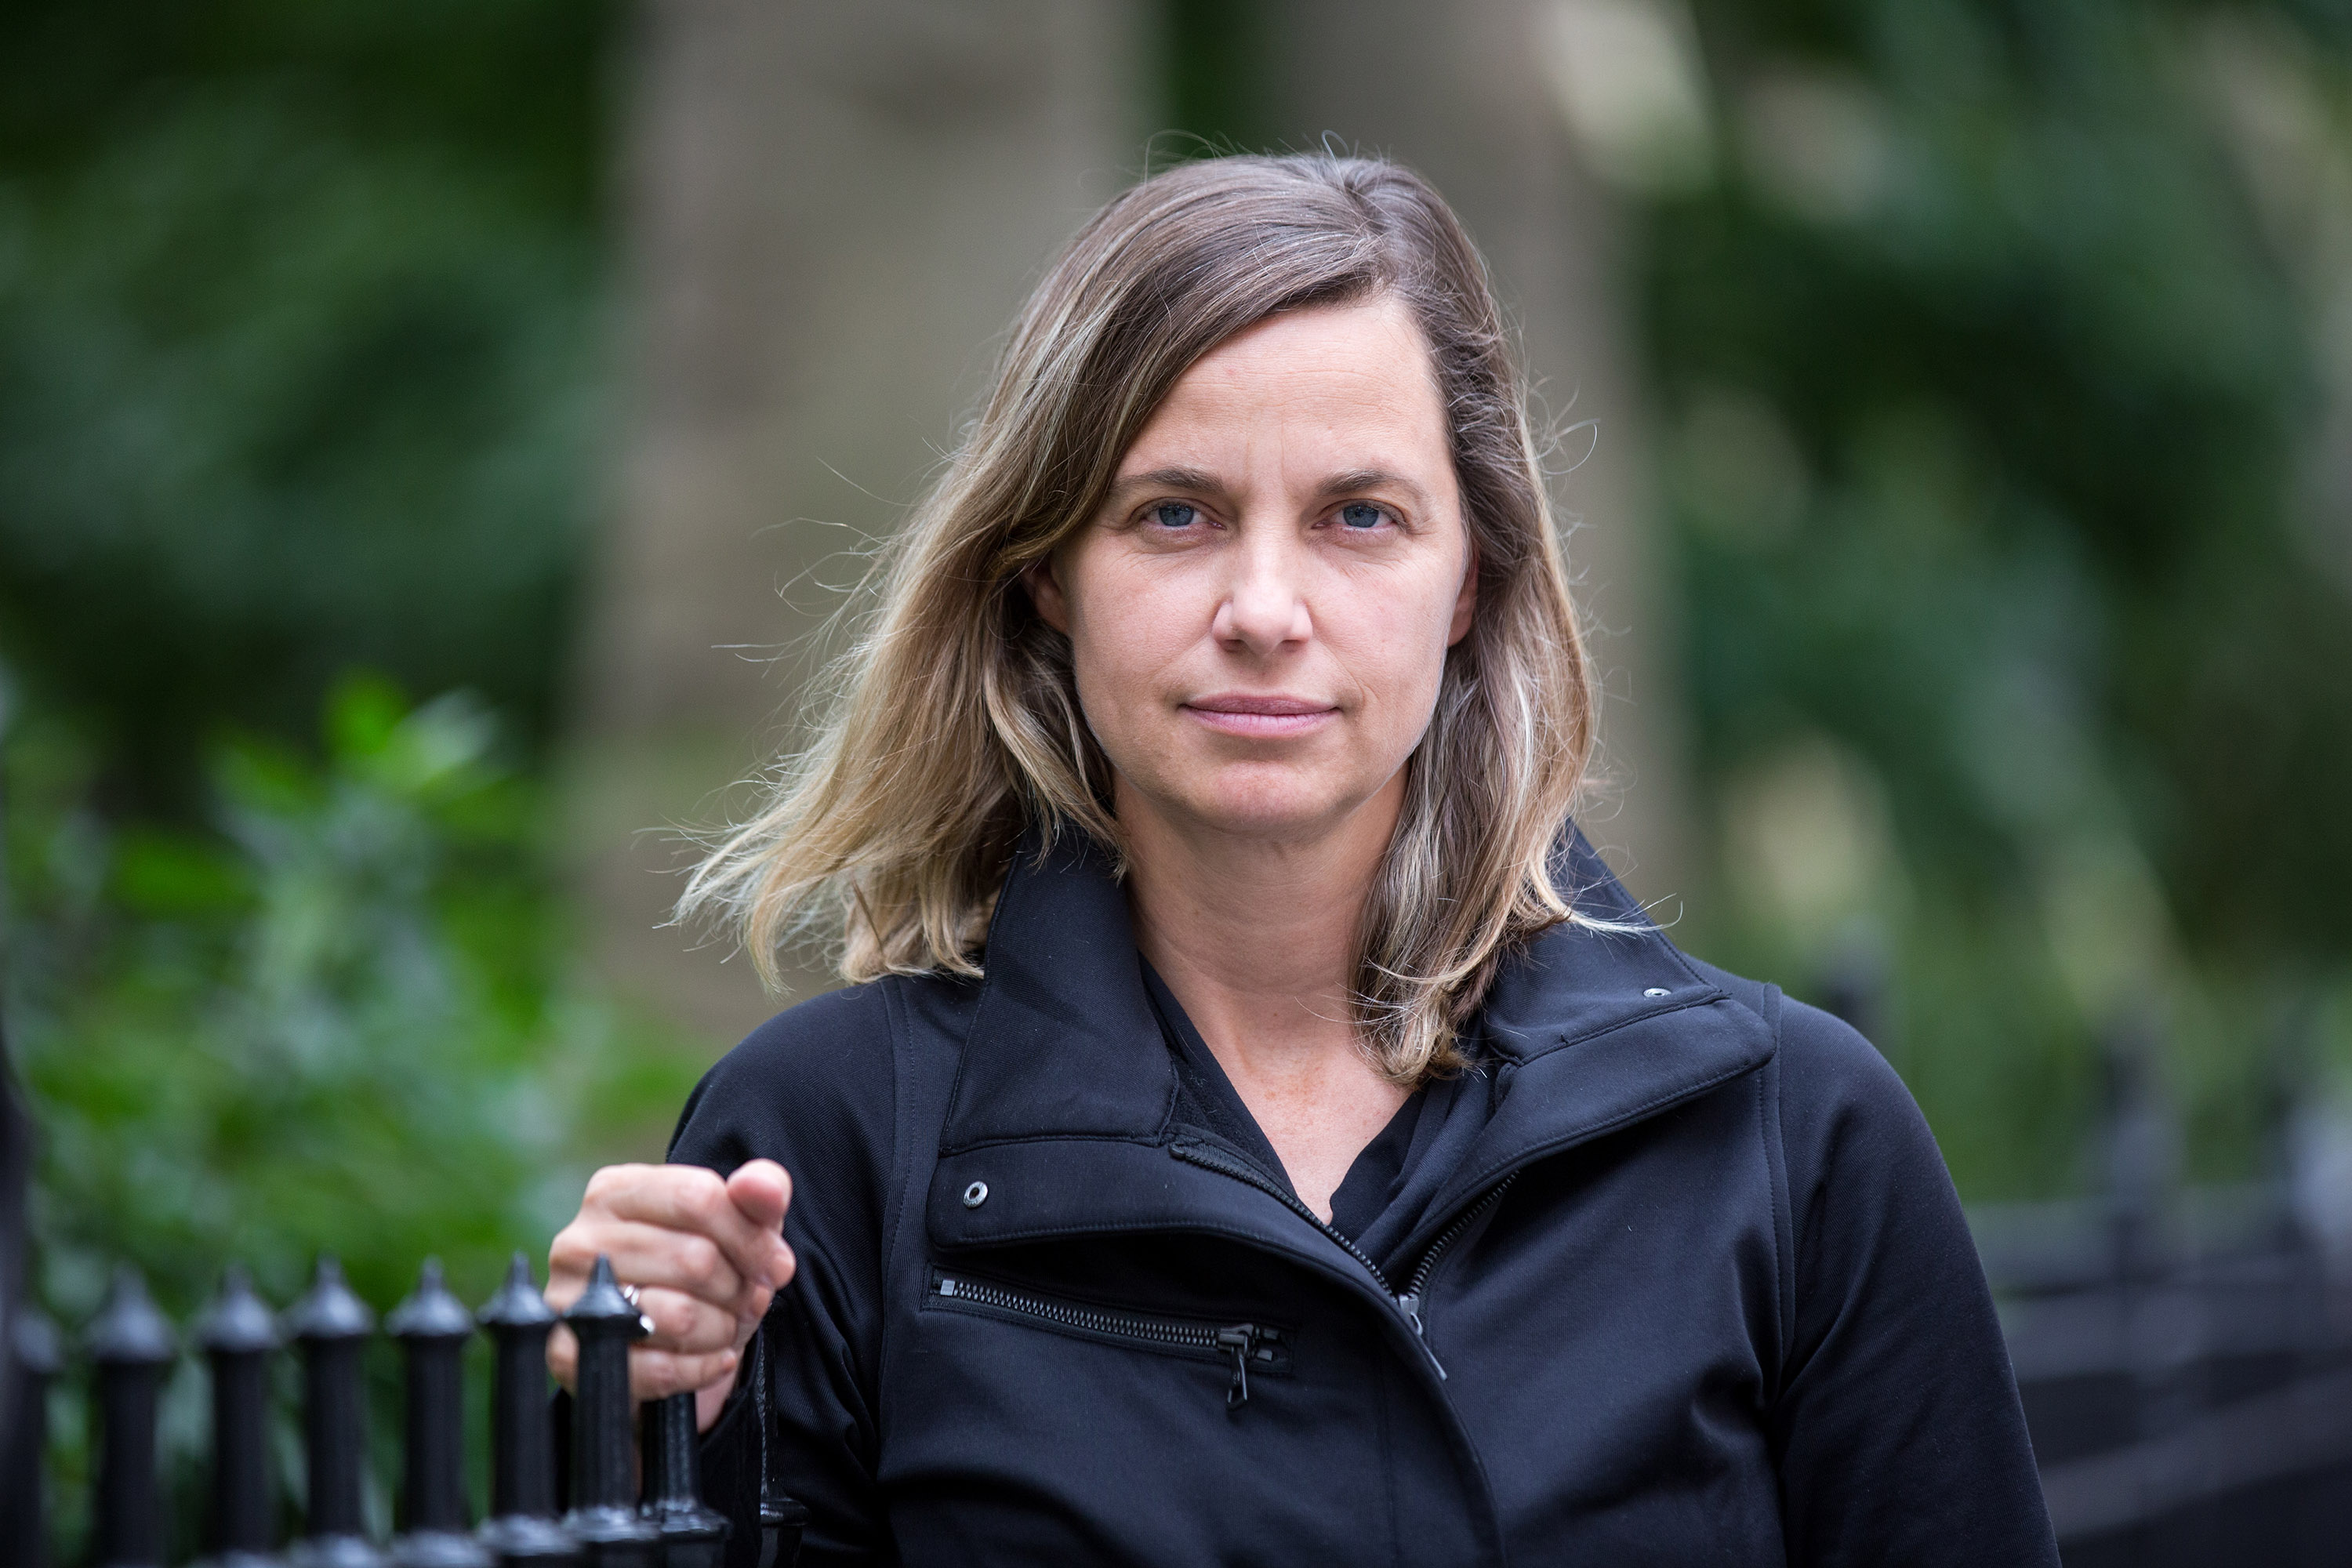 Portrait of Kate Orff leaning on fence